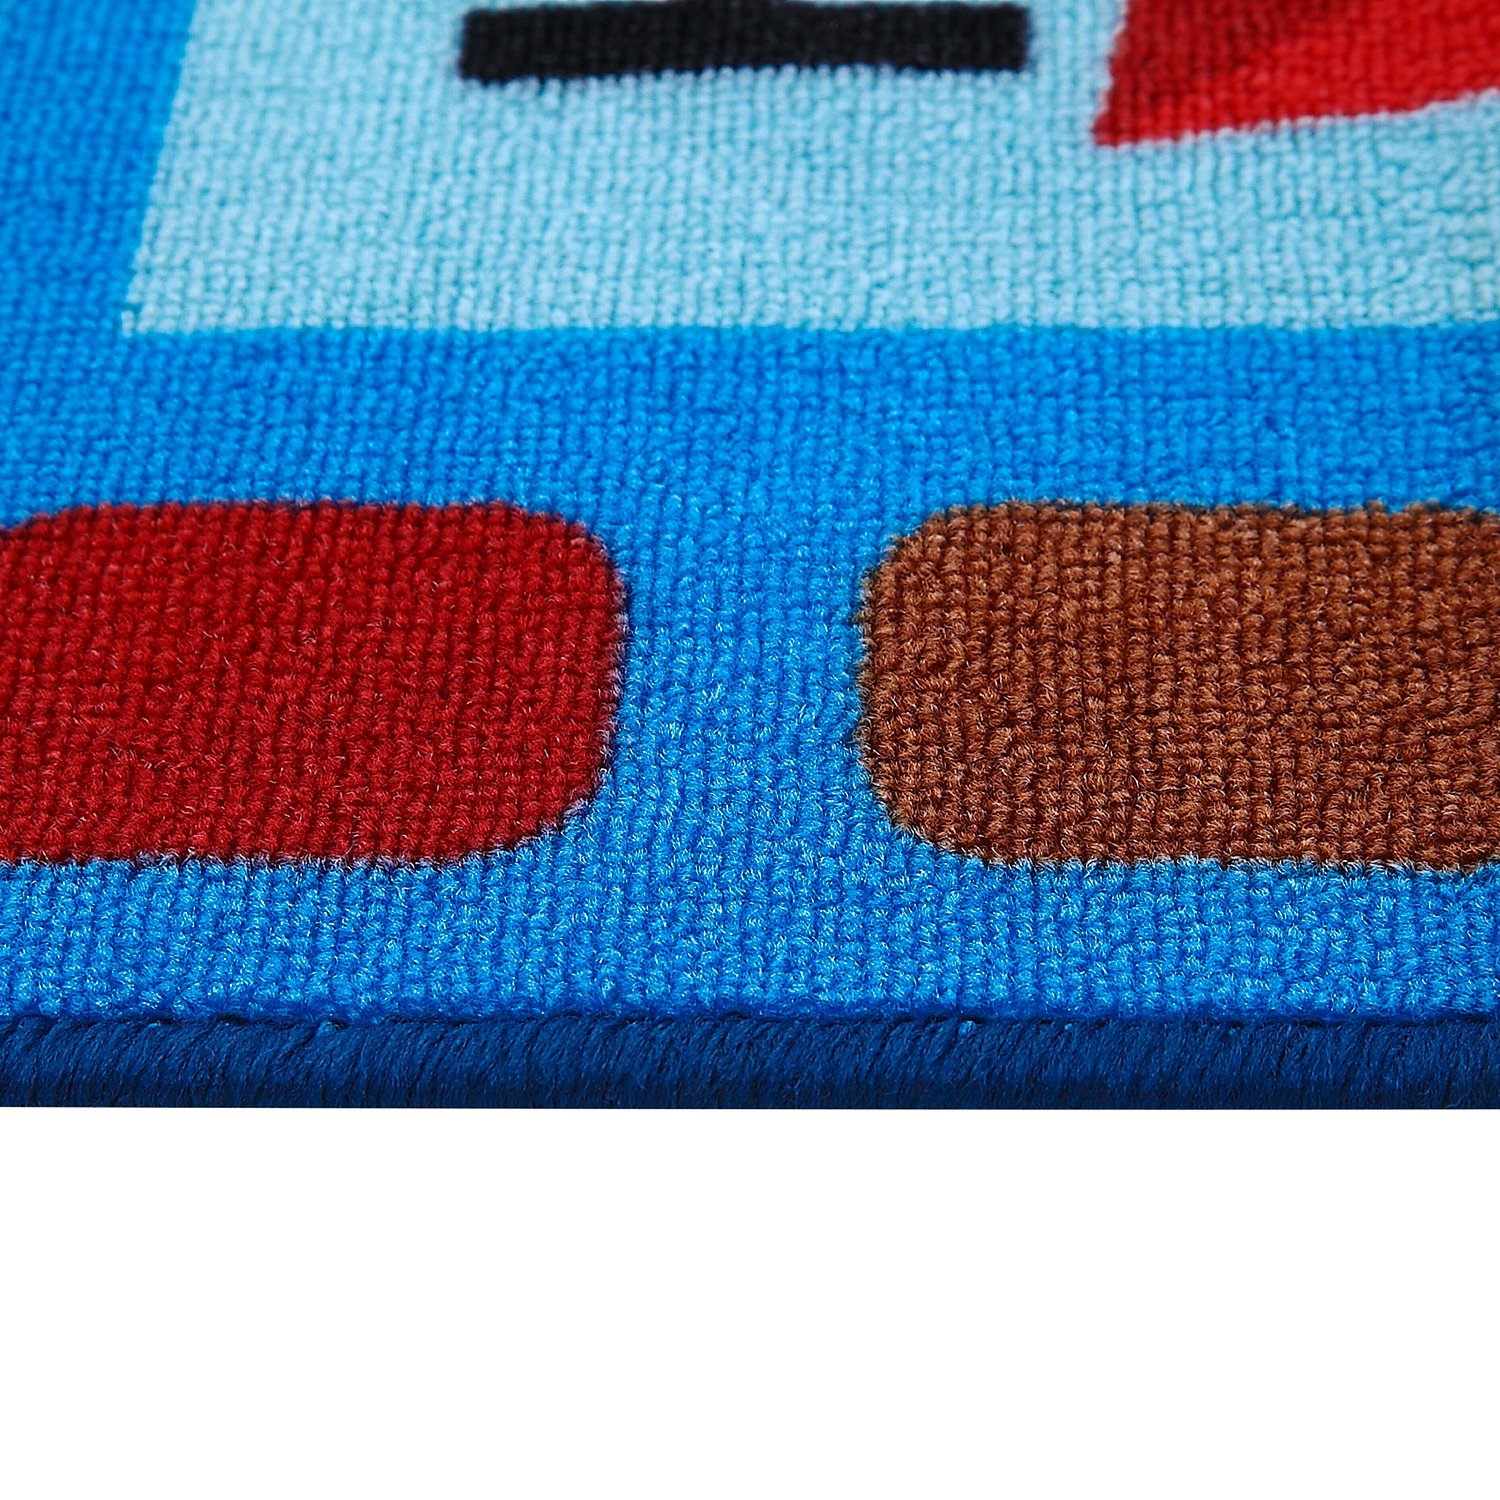 JACKSON Large50 x66 Collection ABC Fun Kids Rugs Numbers and Shapes Educational Classroom Rug for Playroom,Classroom and Kidroom,Safety and Fun Alphabet Rug Learning Carpet for Boys and Girls zimu-1.52